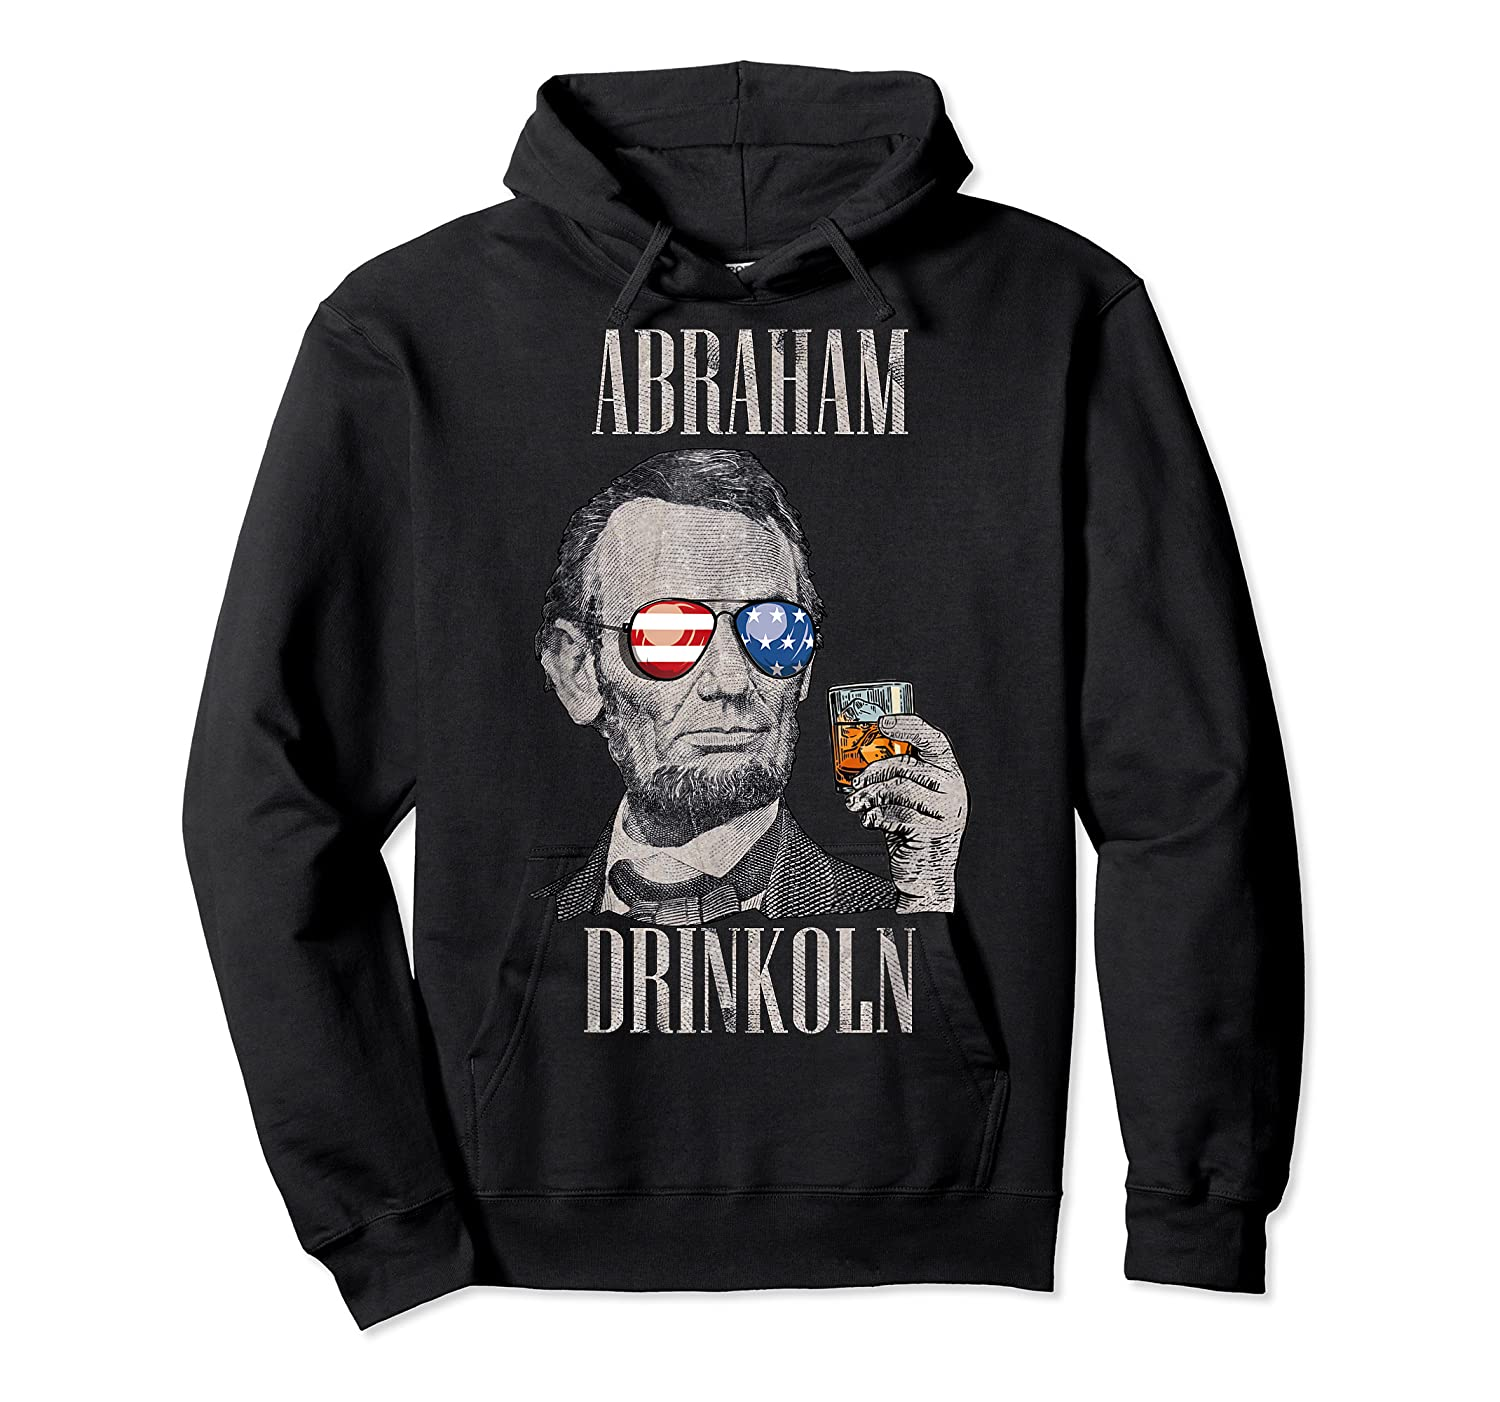 4th Of July Shirts For Abraham Drinkoln Abe Lincoln Tee T Shirt Unisex Pullover Hoodie